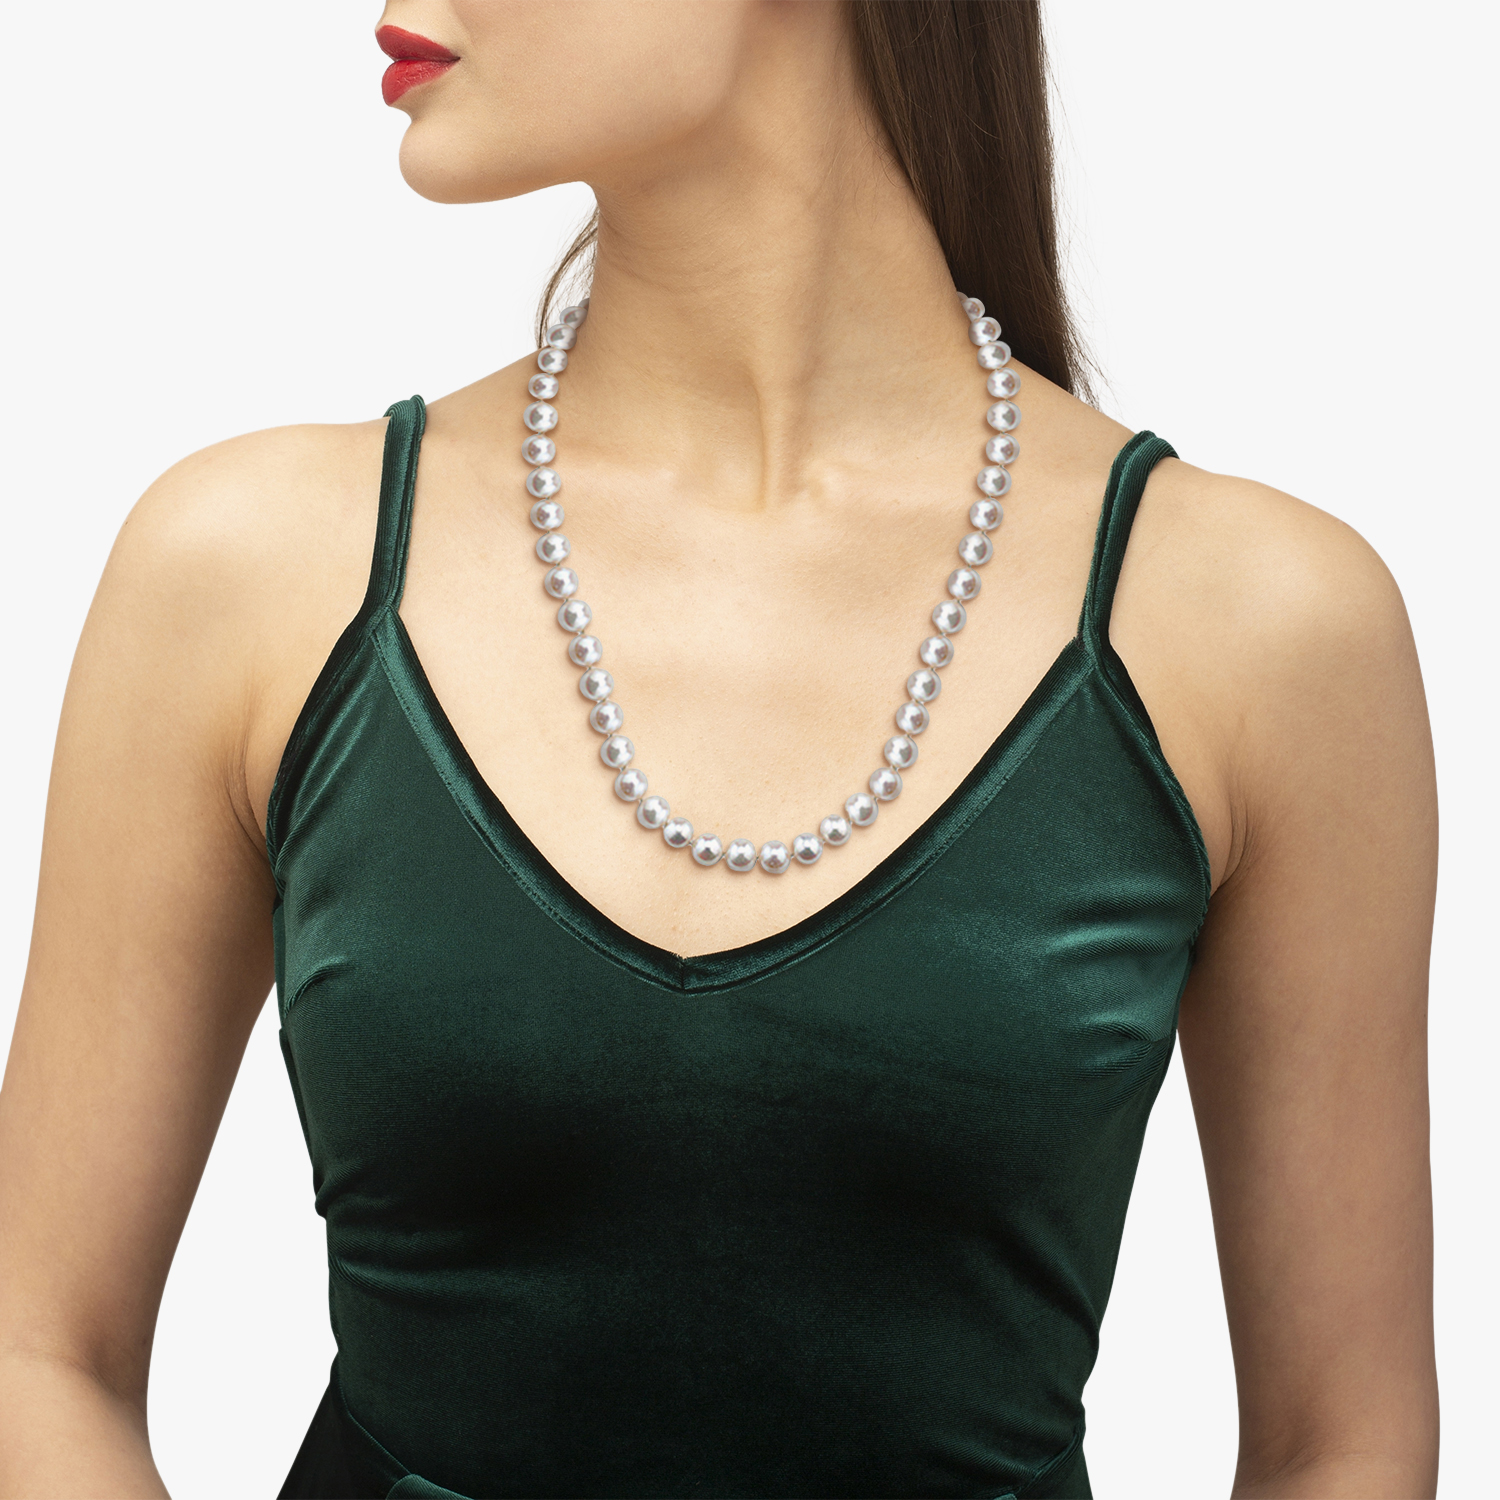 Freshwater Cultured Pearl Necklace with 14k Gold 7.0-7.5mm